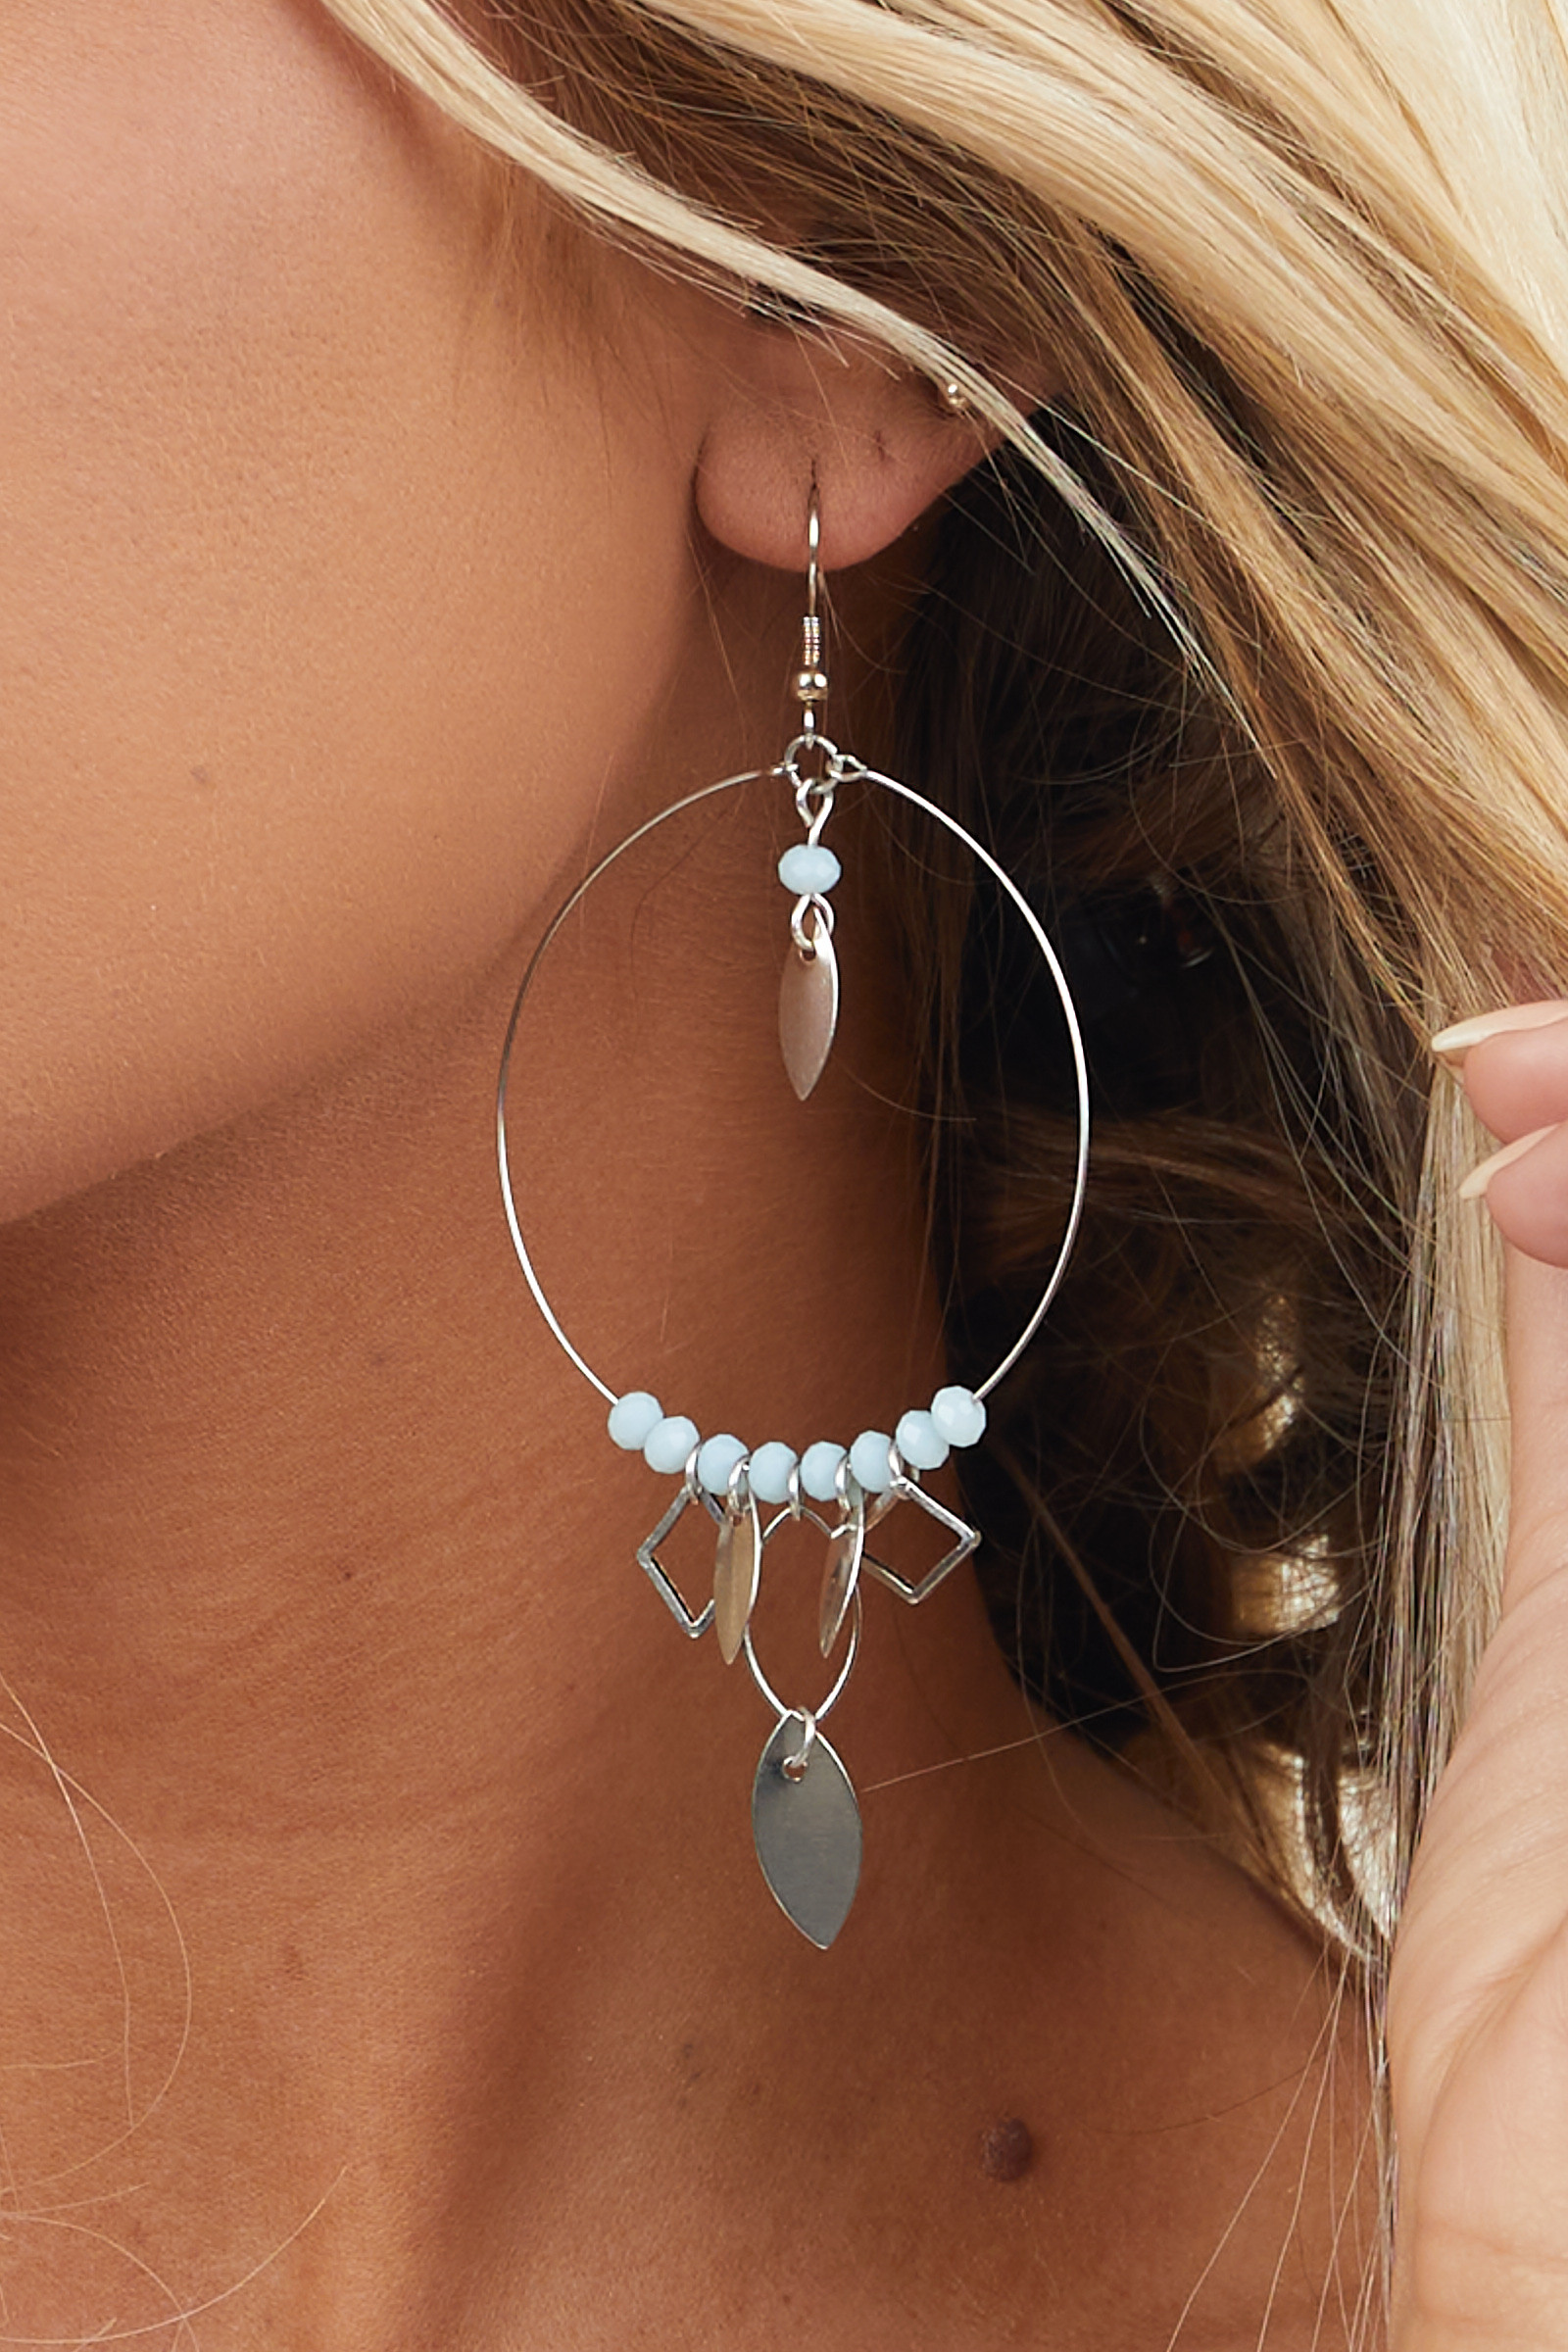 Silver Chandelier Earrings with Leaf and Mint Bead Details